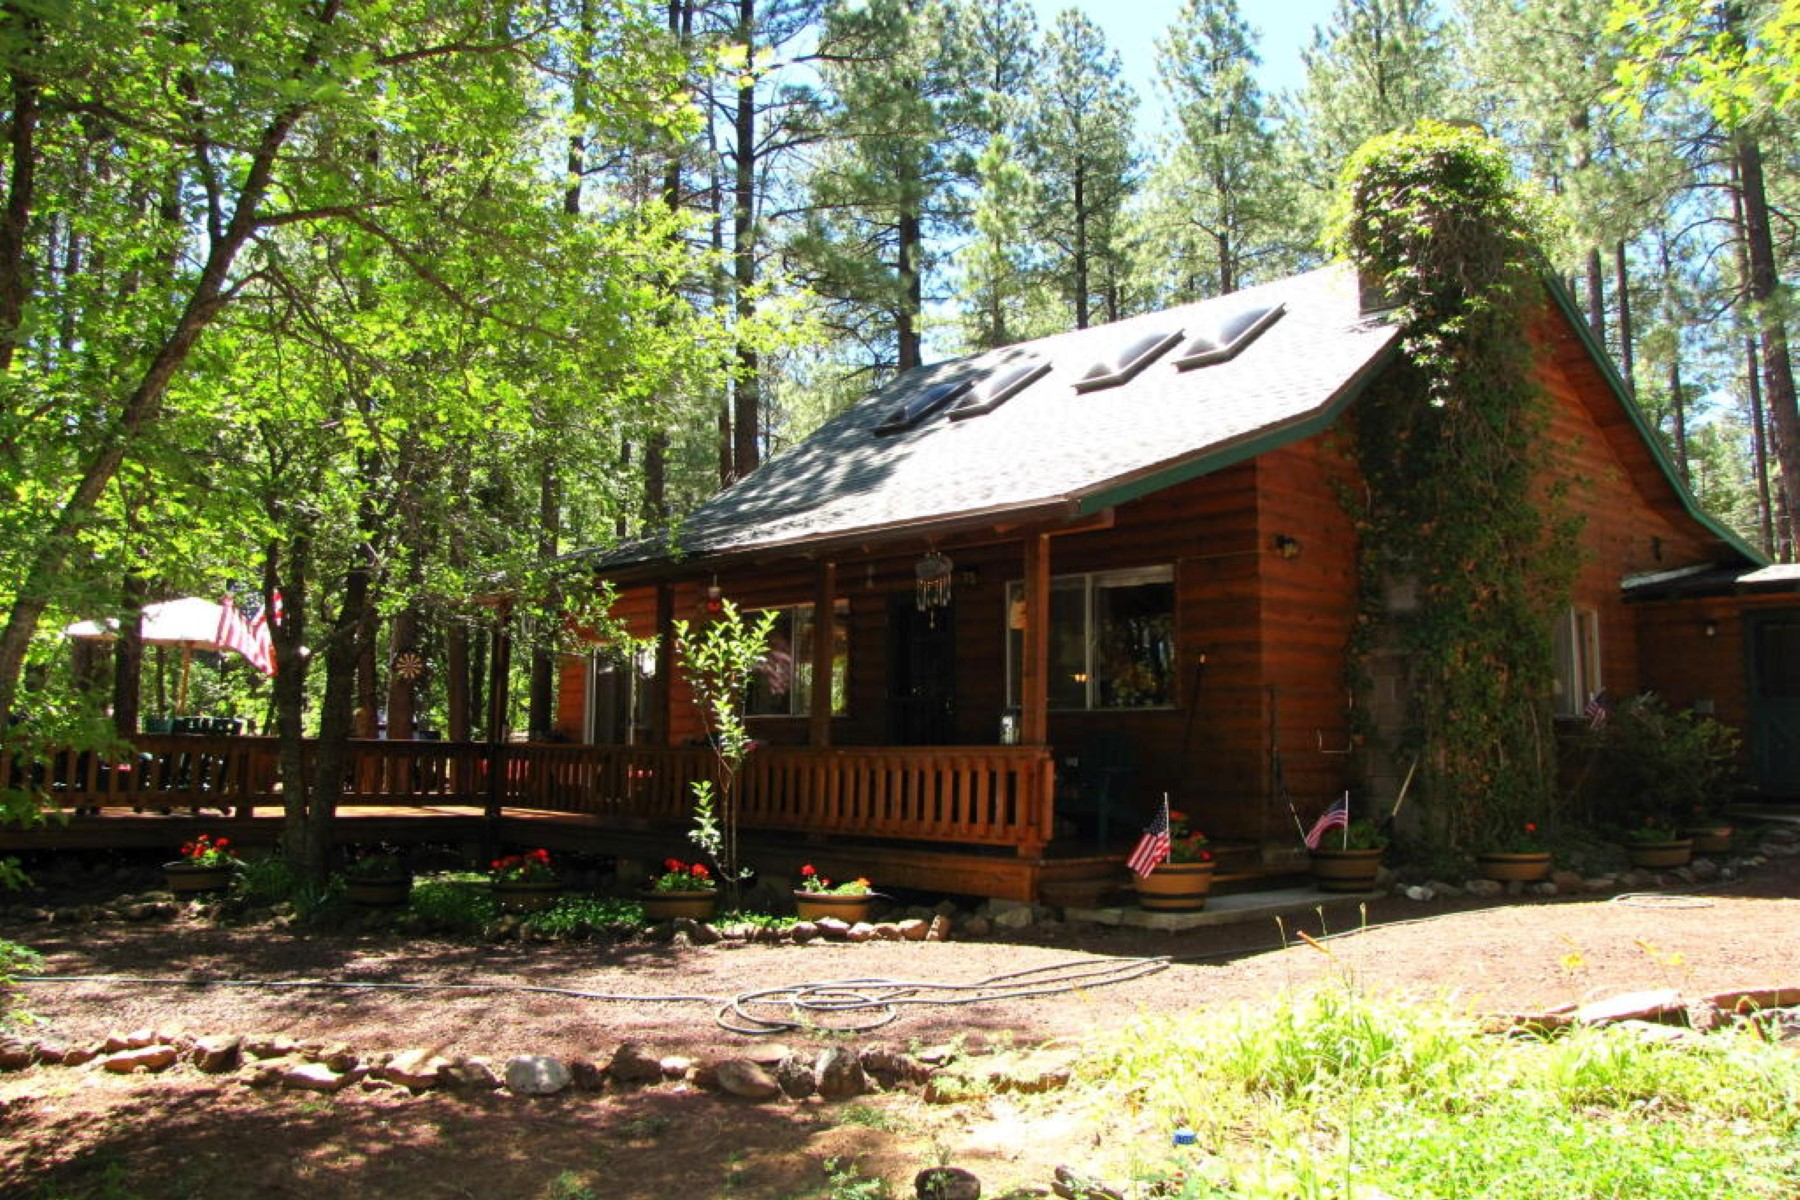 Casa para uma família para Venda às Charming and updated cabin in White Mountain Summer Homes 2137 Jackrabbit Dr Pinetop, Arizona, 85935 Estados Unidos